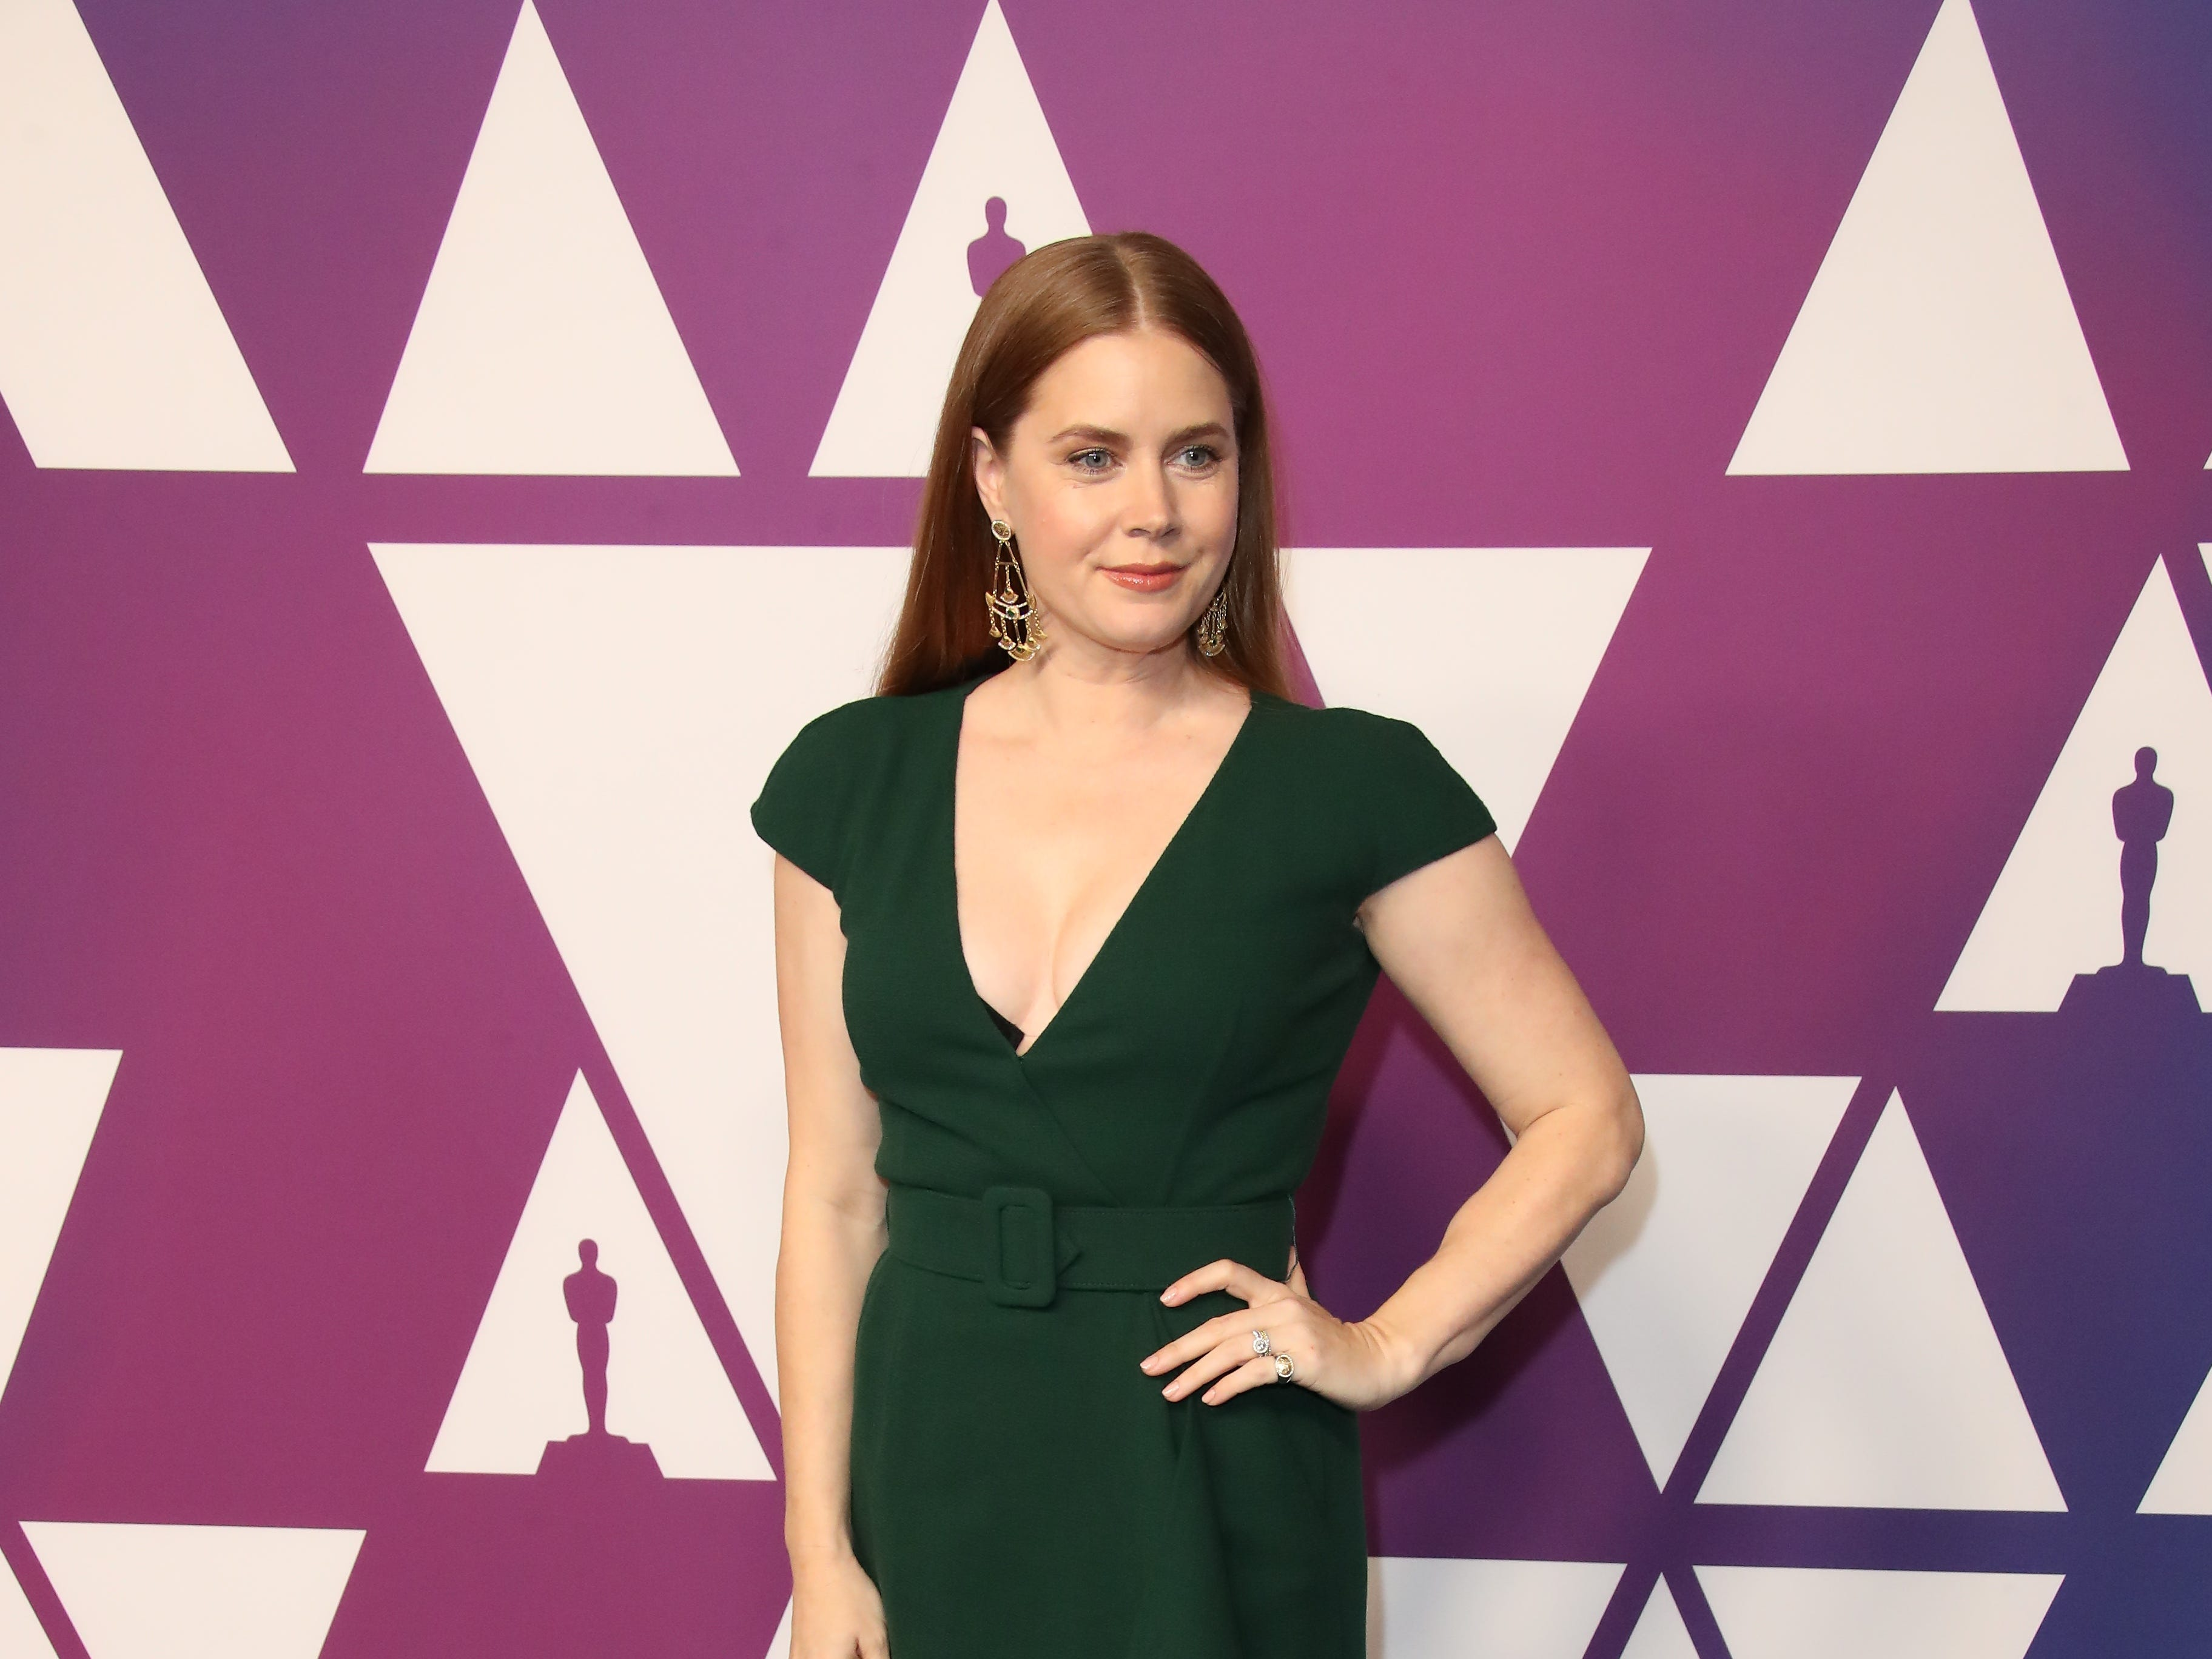 2/4/19 12:29:49 PM -- Beverly Hills, CA, U.S.A  -- Amy Adams arrives at the 91st Oscar nominees luncheon at the Beverly Hilton Hotel in Beverly Hills, CA--    Photo by Dan MacMedan, USA TODAY contract photographer ORG XMIT:  DM 137796 OscarNomineesLun 2/4/2019 [Via MerlinFTP Drop]